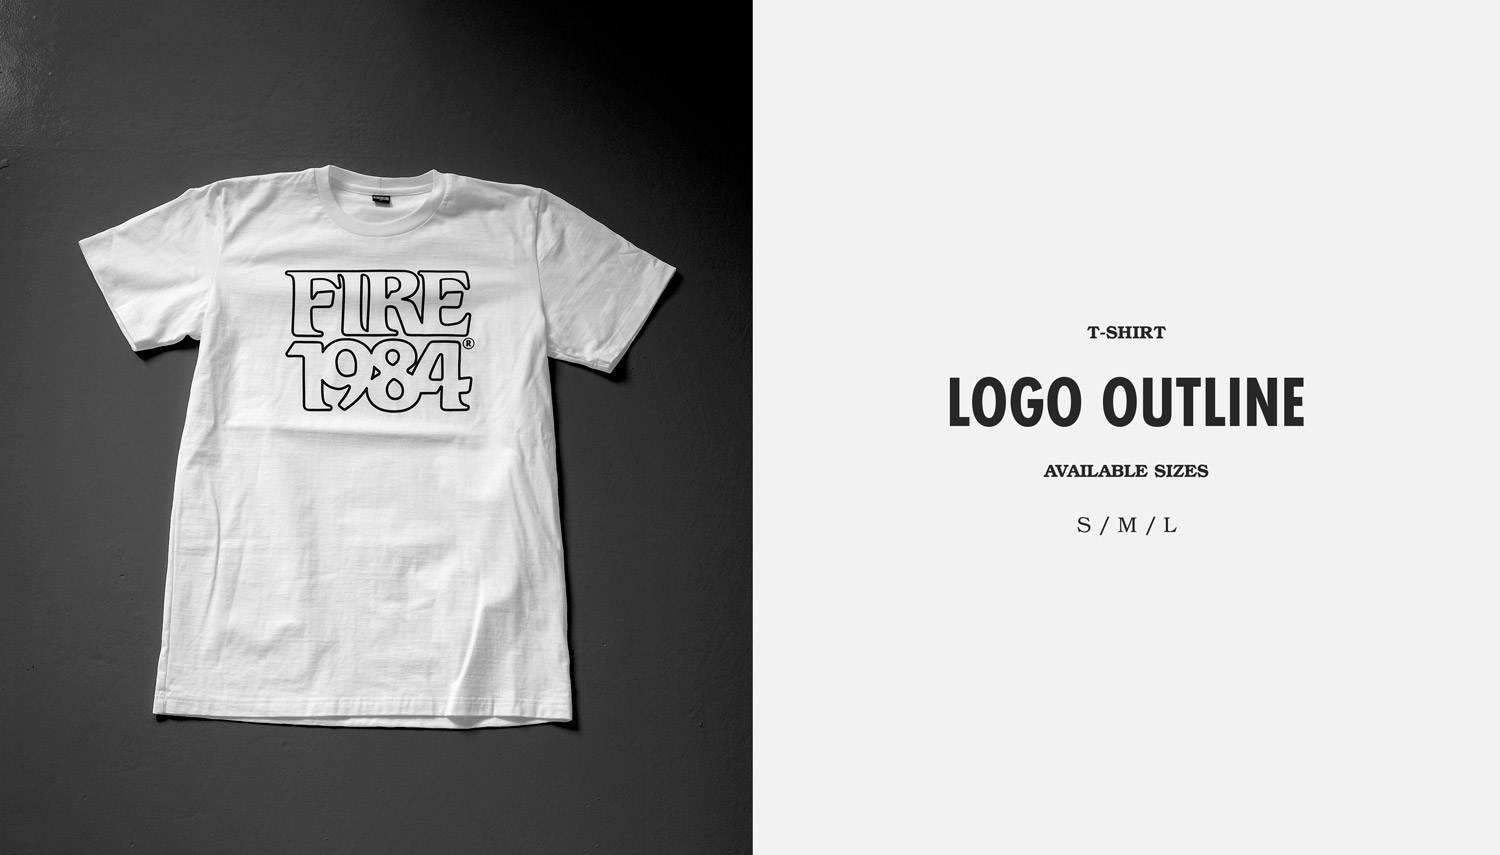 FIRE1984 catalog 20171 tshirt logo outline